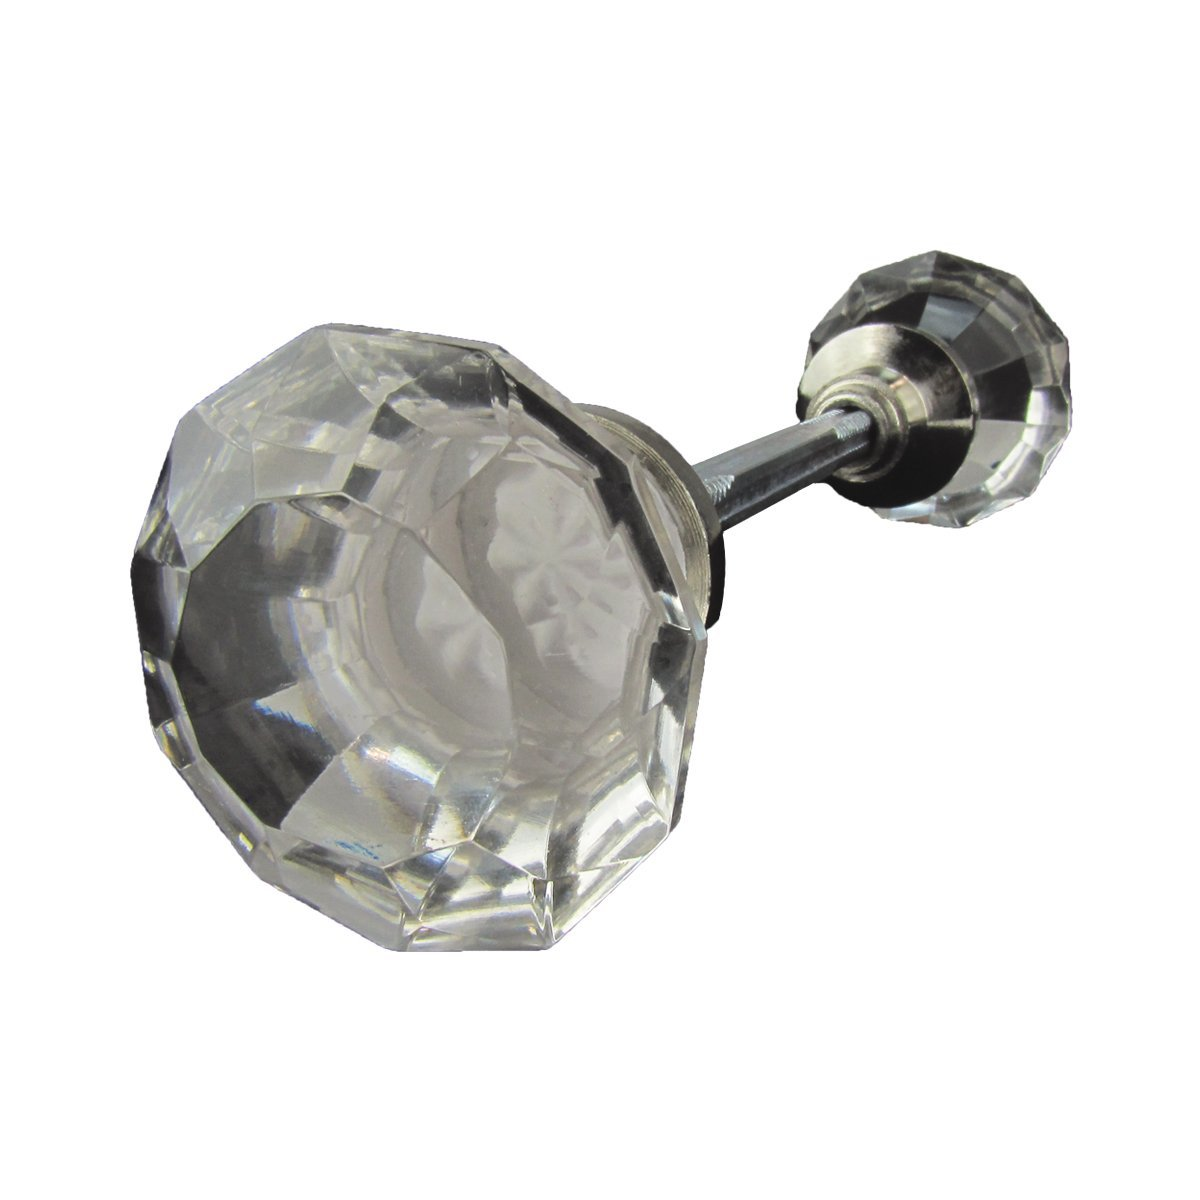 Cheap Glass Door Knob, find Glass Door Knob deals on line at Alibaba.com